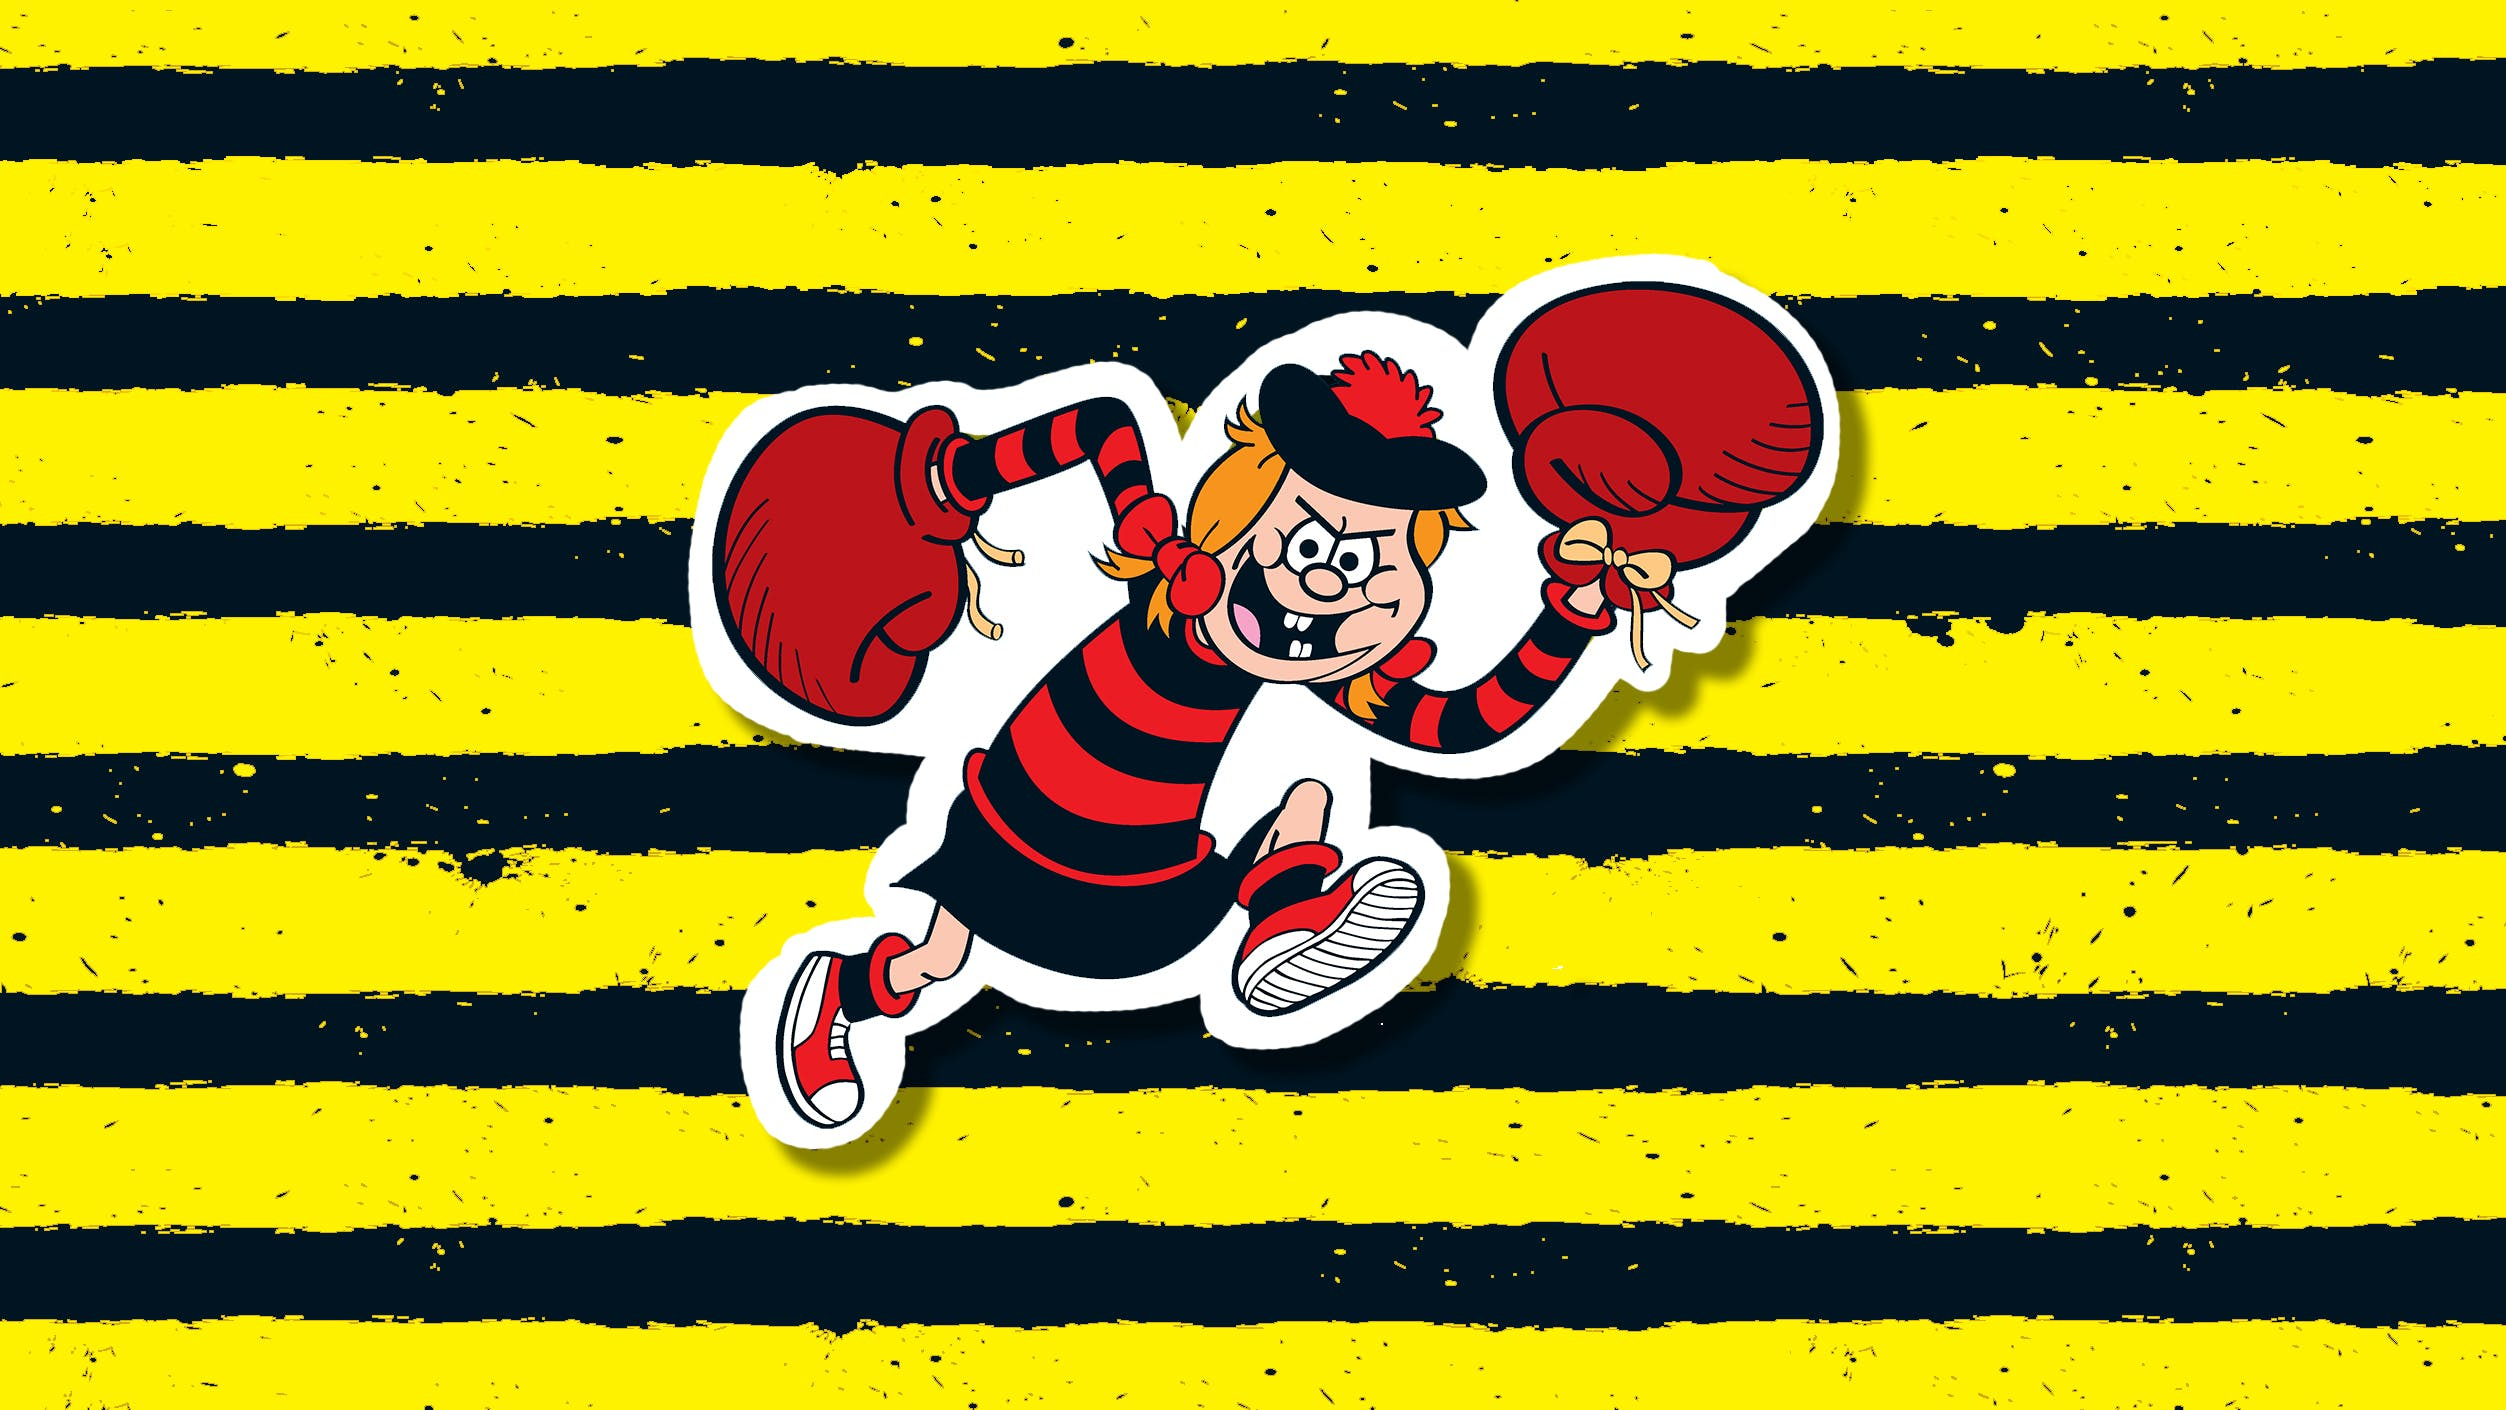 Minnie the Minx from Beano